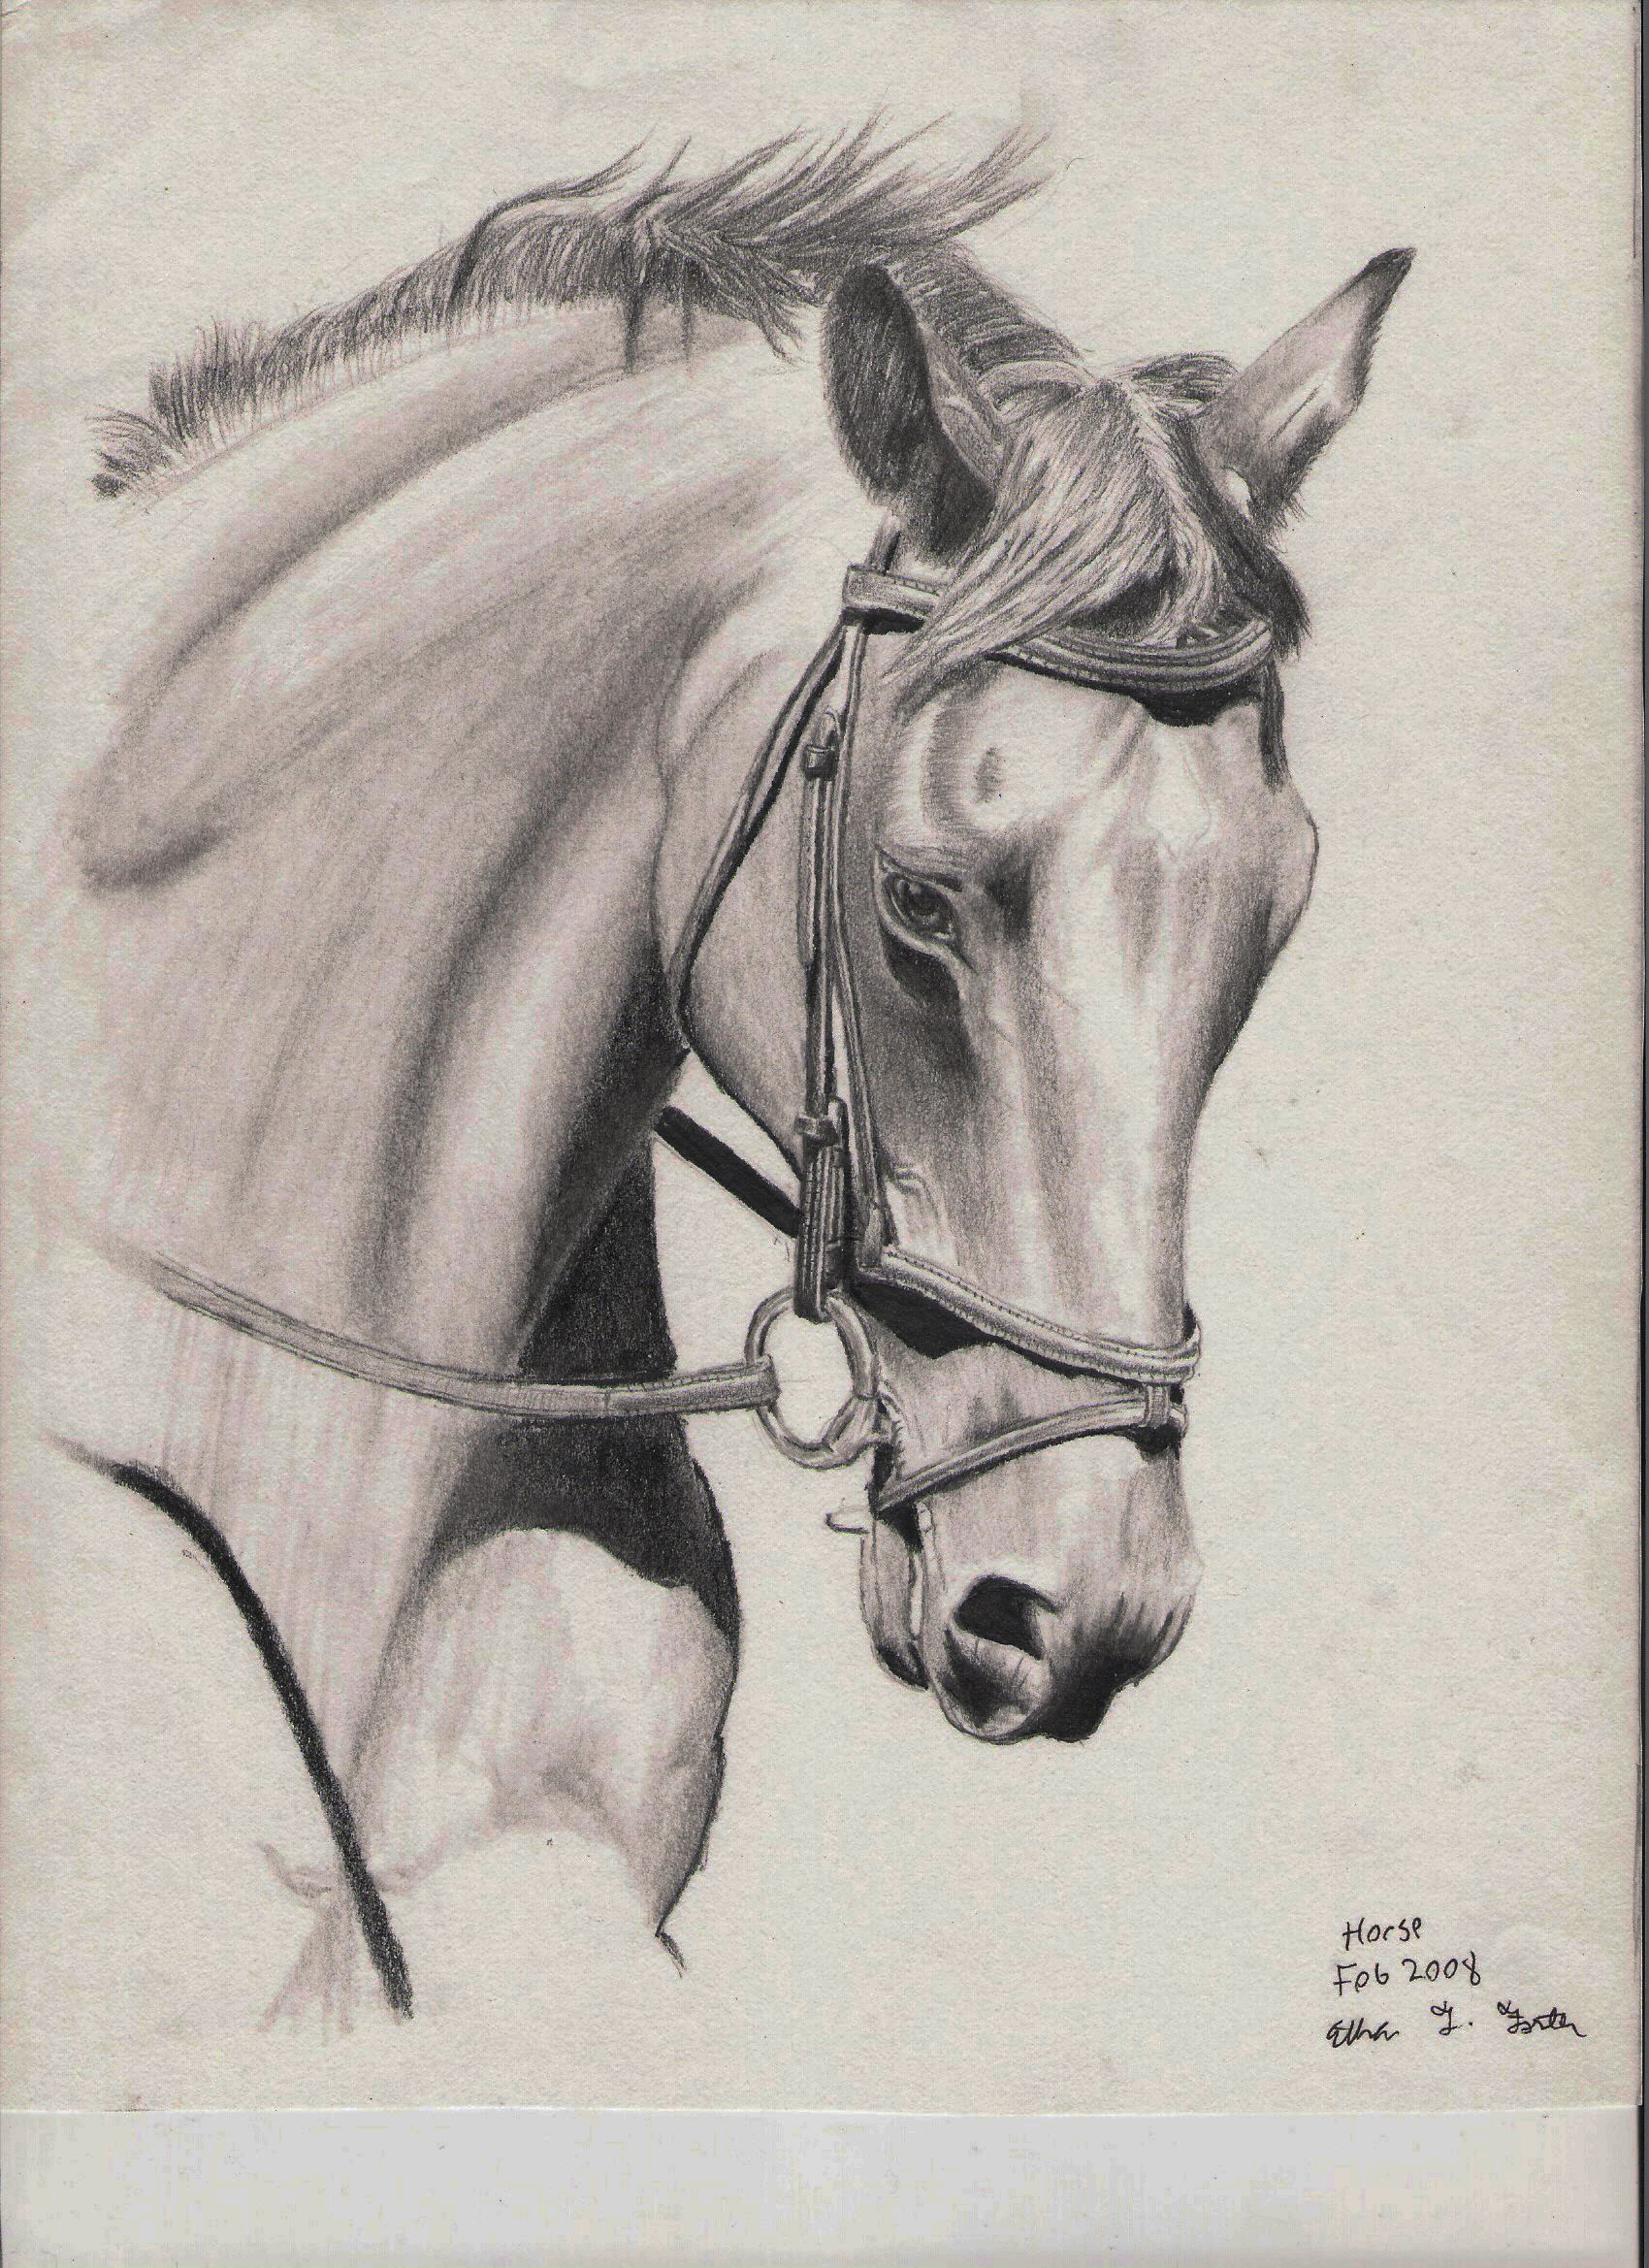 Horse Pencil Drawing In H, F, Hb, And Pencil Horse Drawing